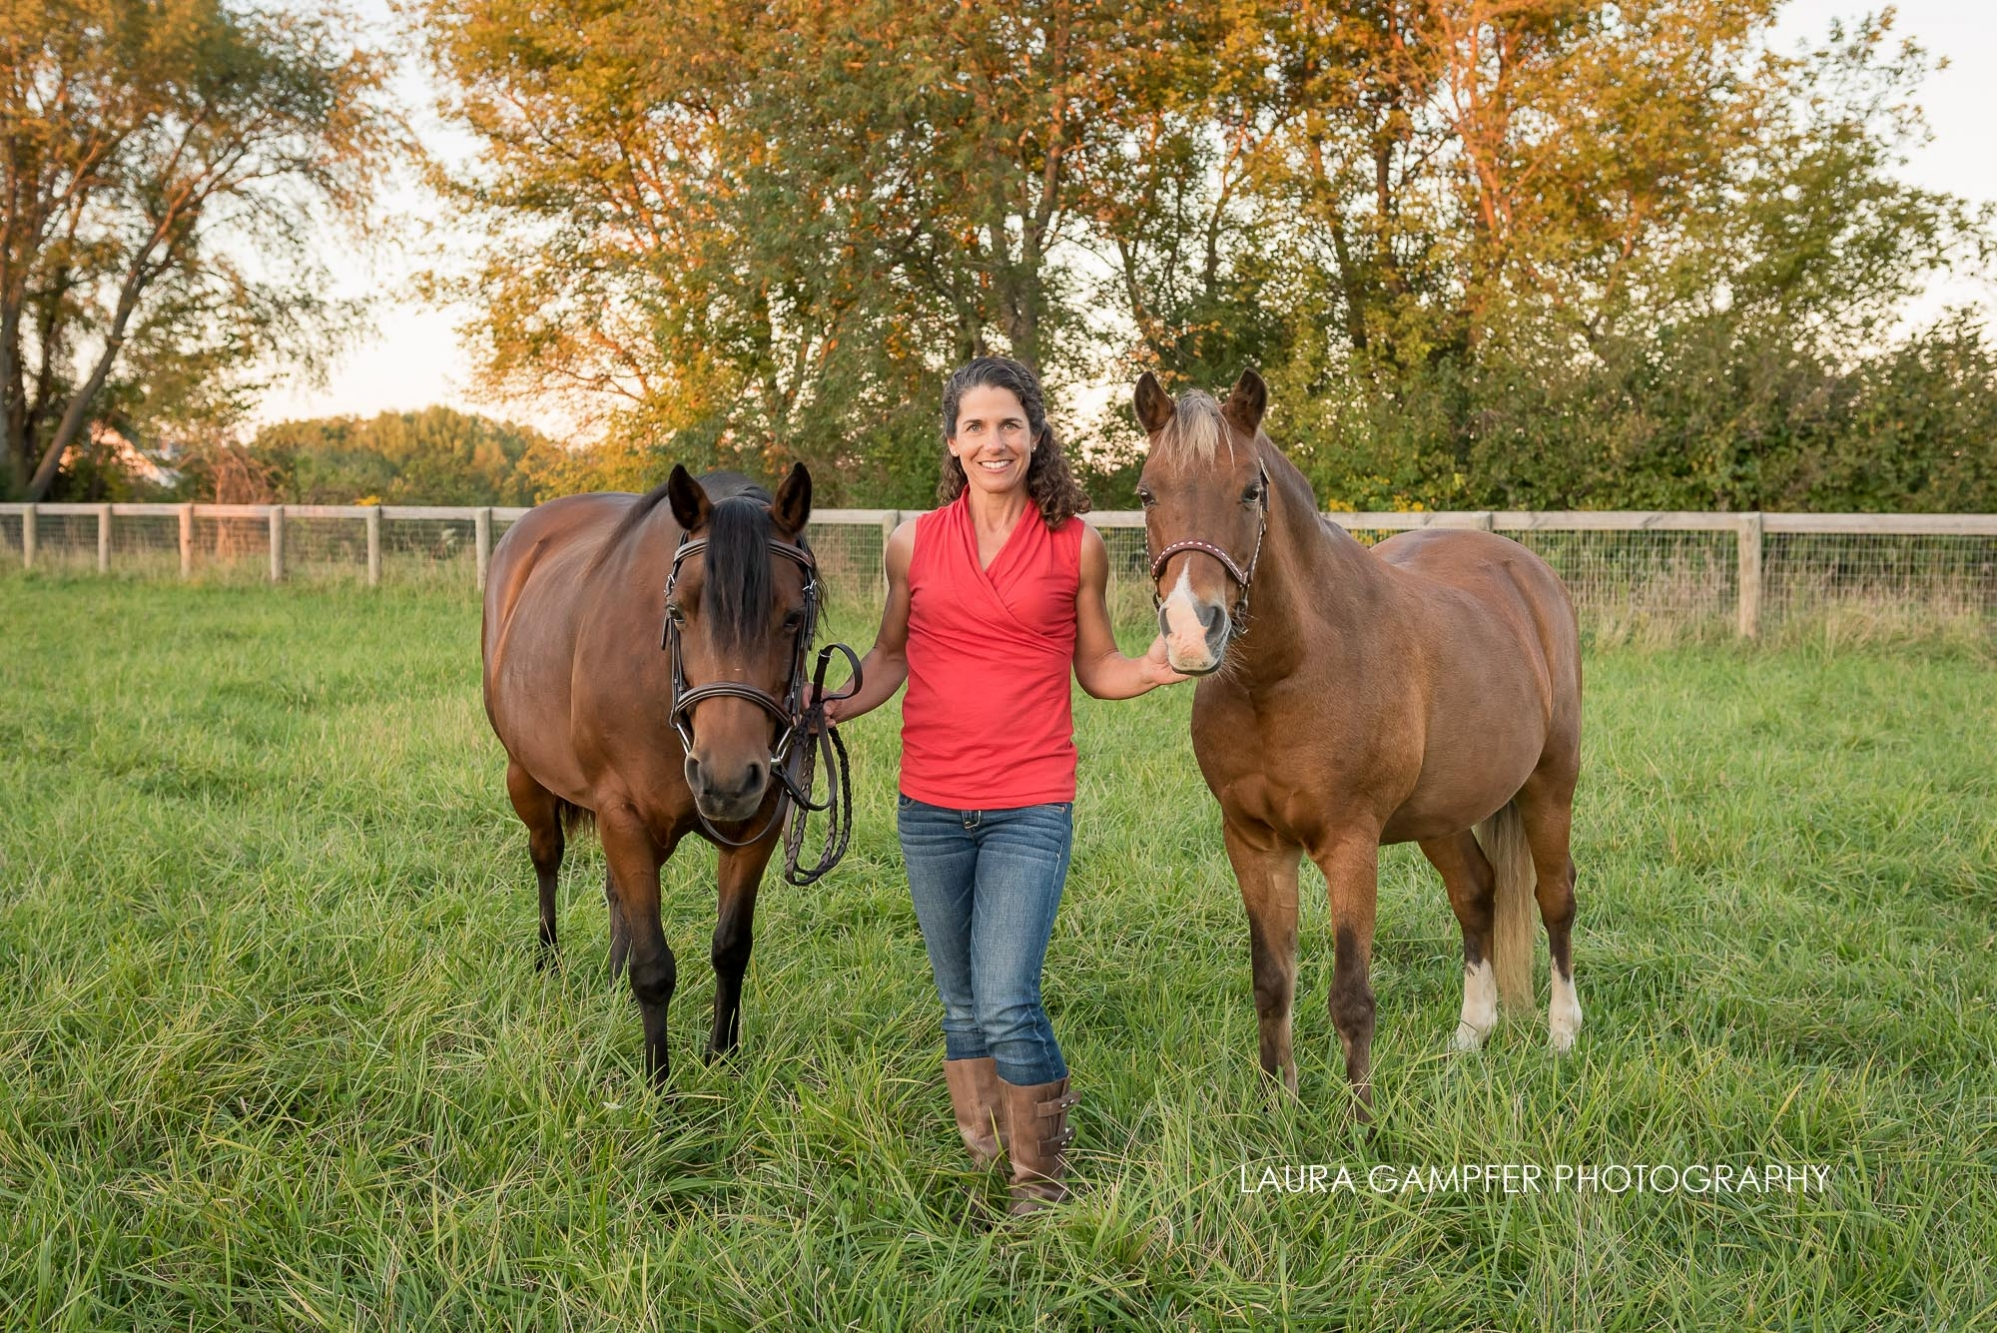 kane-county-il-horse photographer